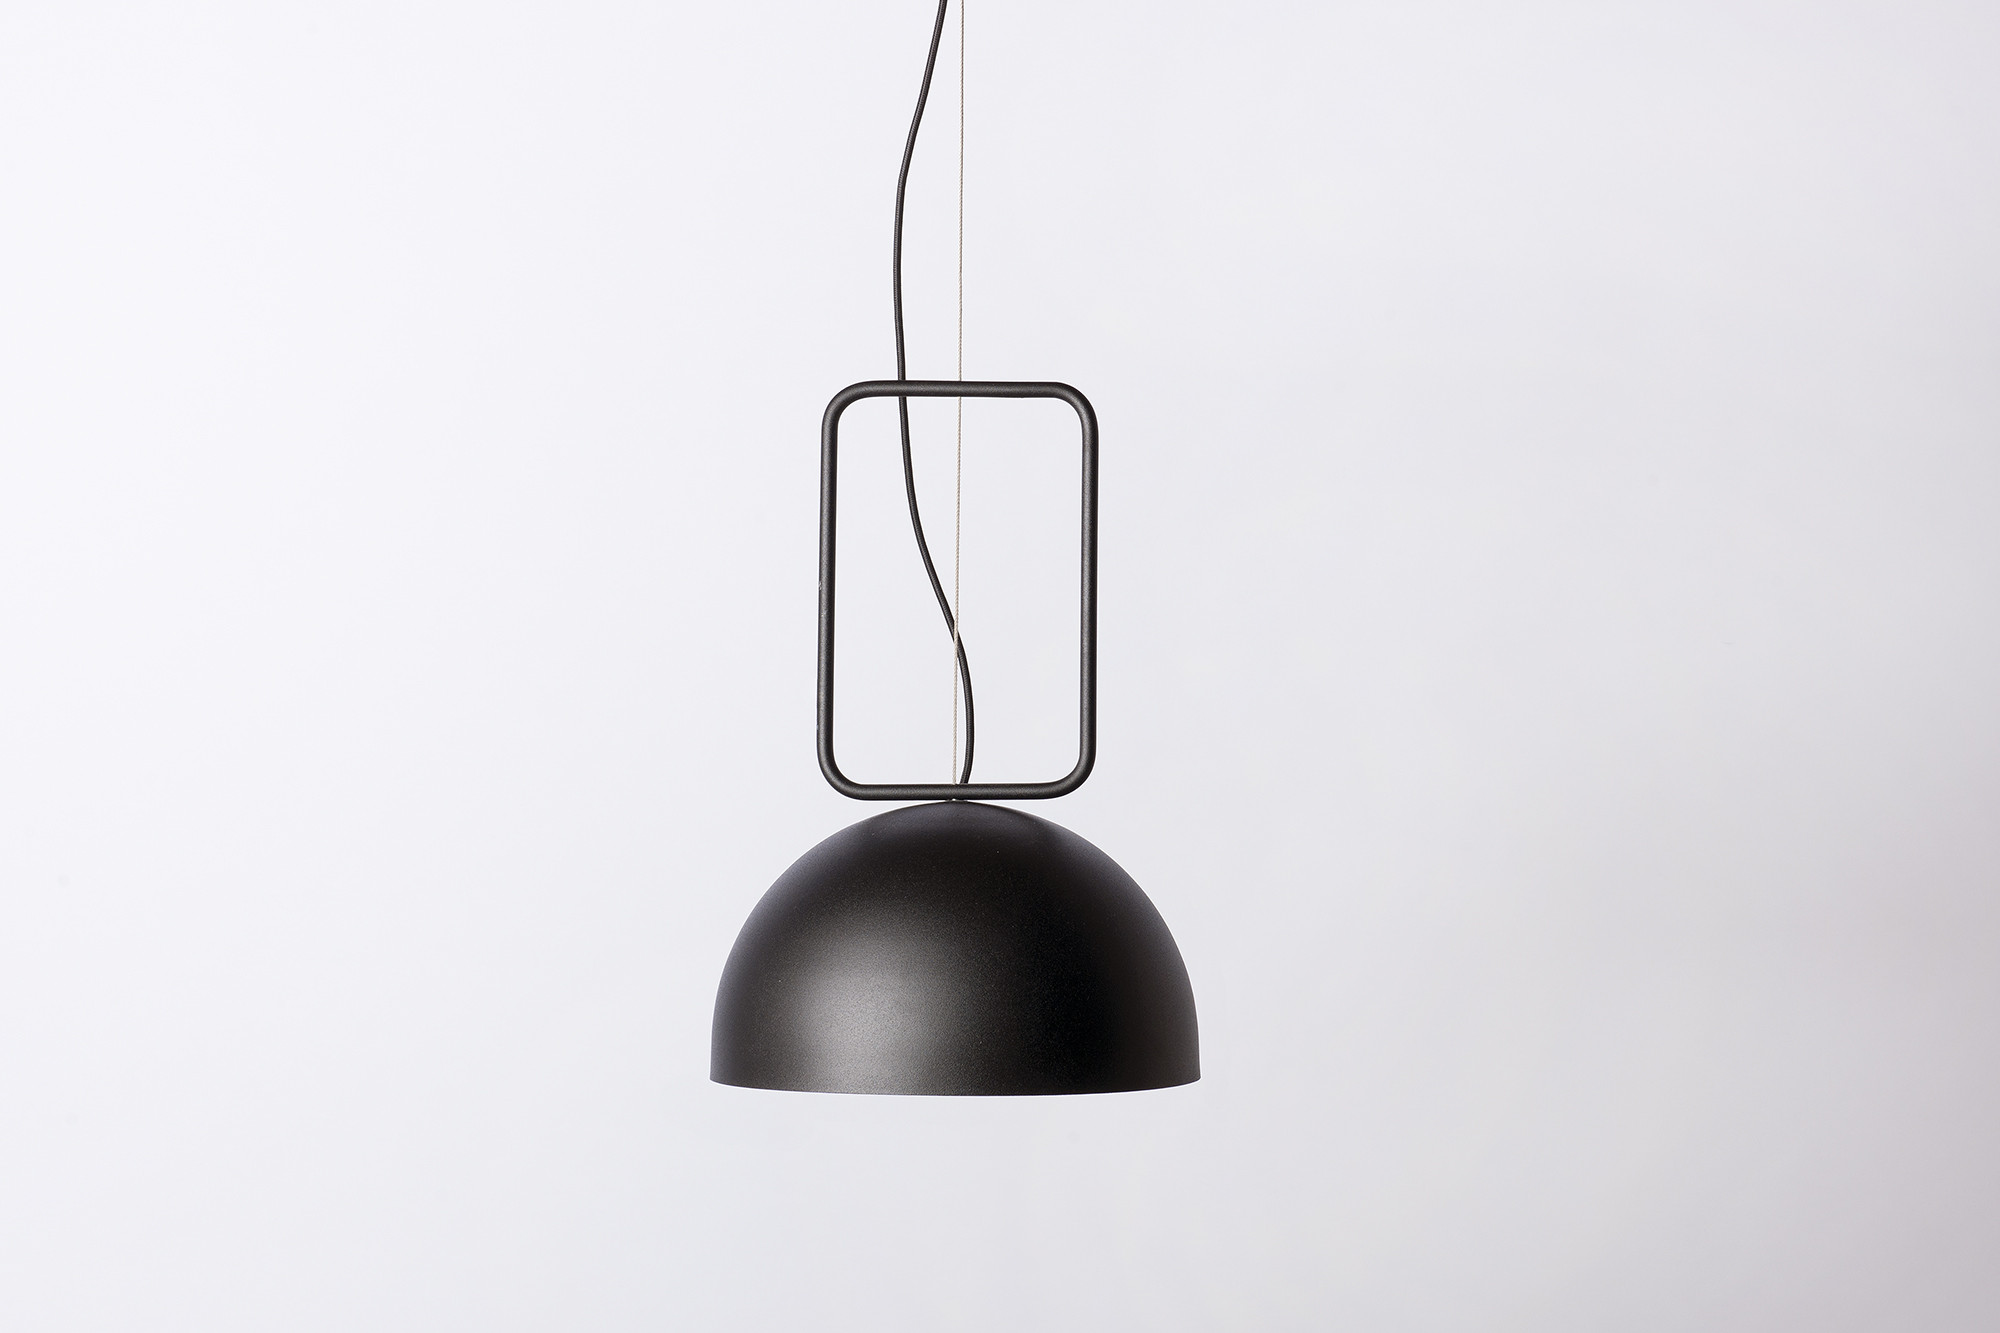 King Dome Lamps by Dowel Jones for Woodmark